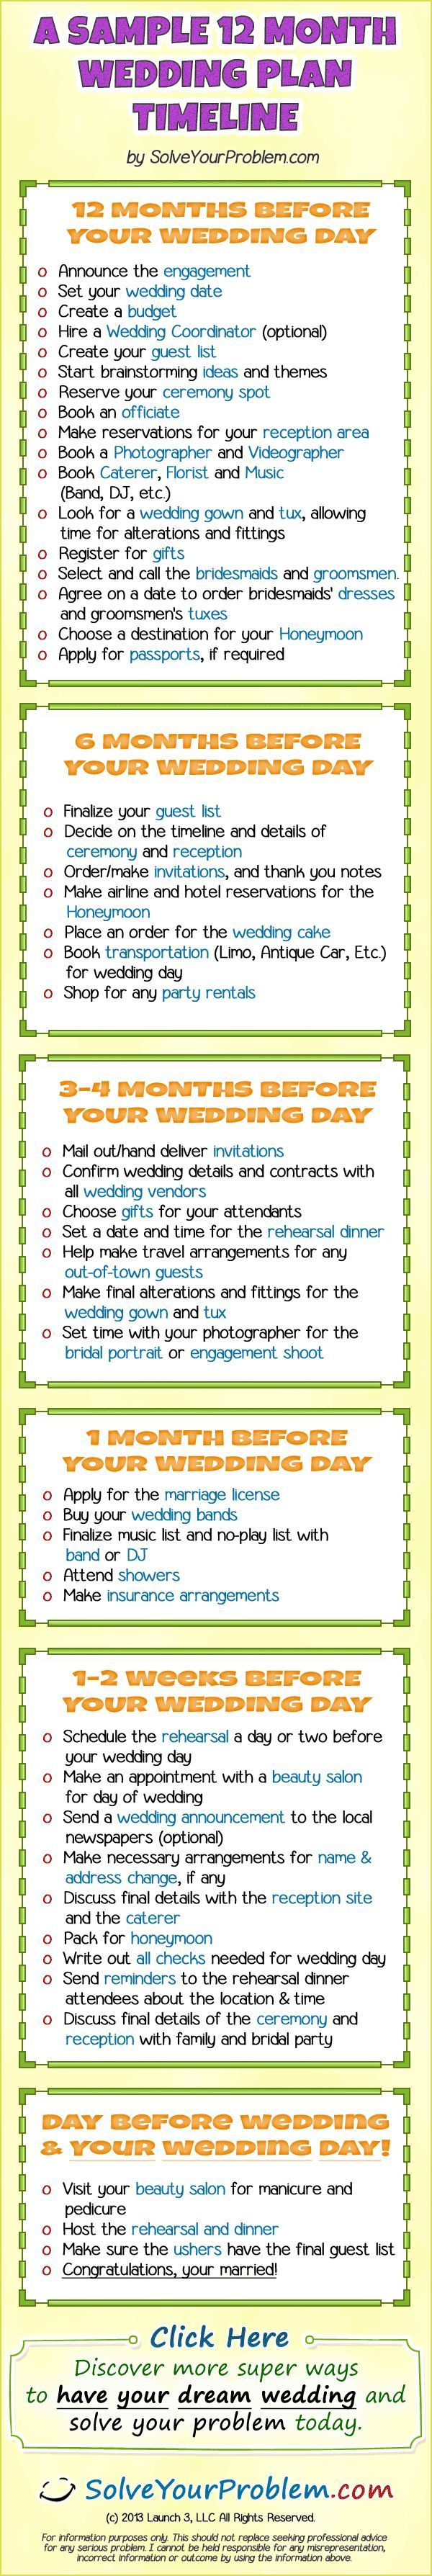 Month Wedding Plan Because I Want A Year Long Engagement